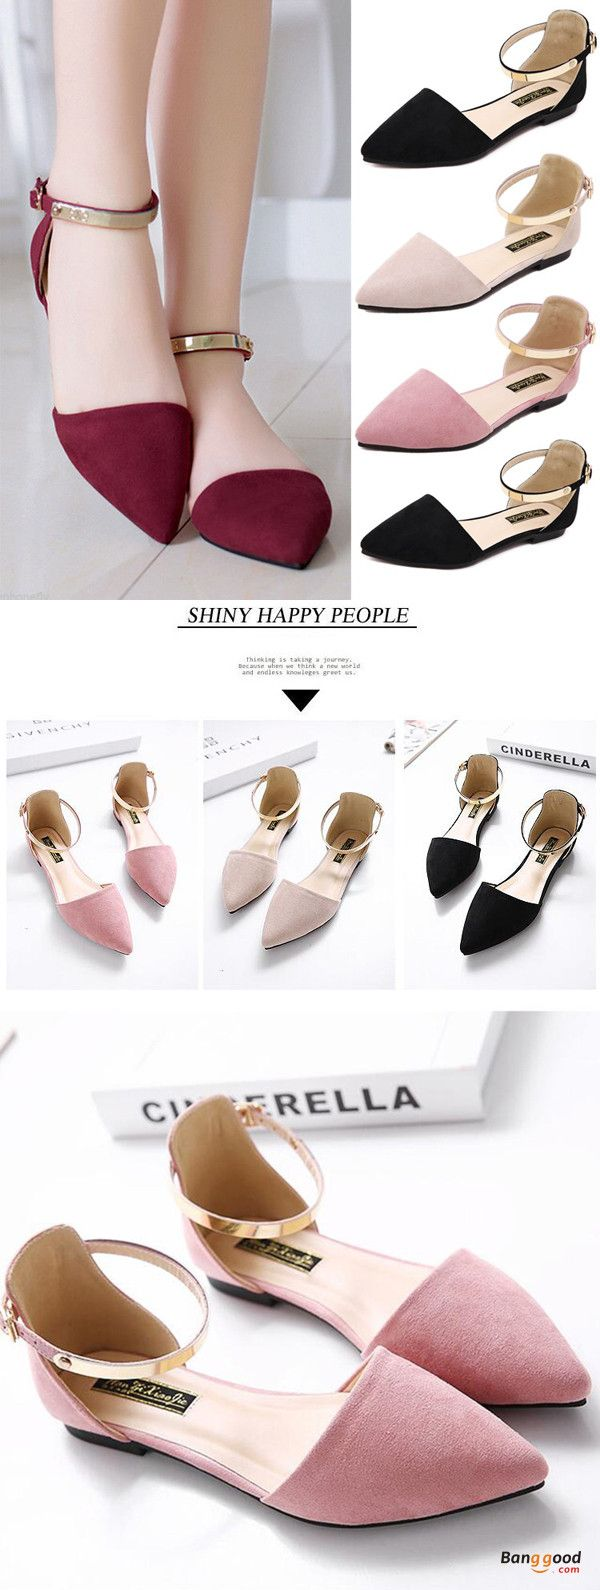 US$21.86 + Free shipping. Size(US): 5~11. Color: Black, Beige, Pink. Upper Mater…